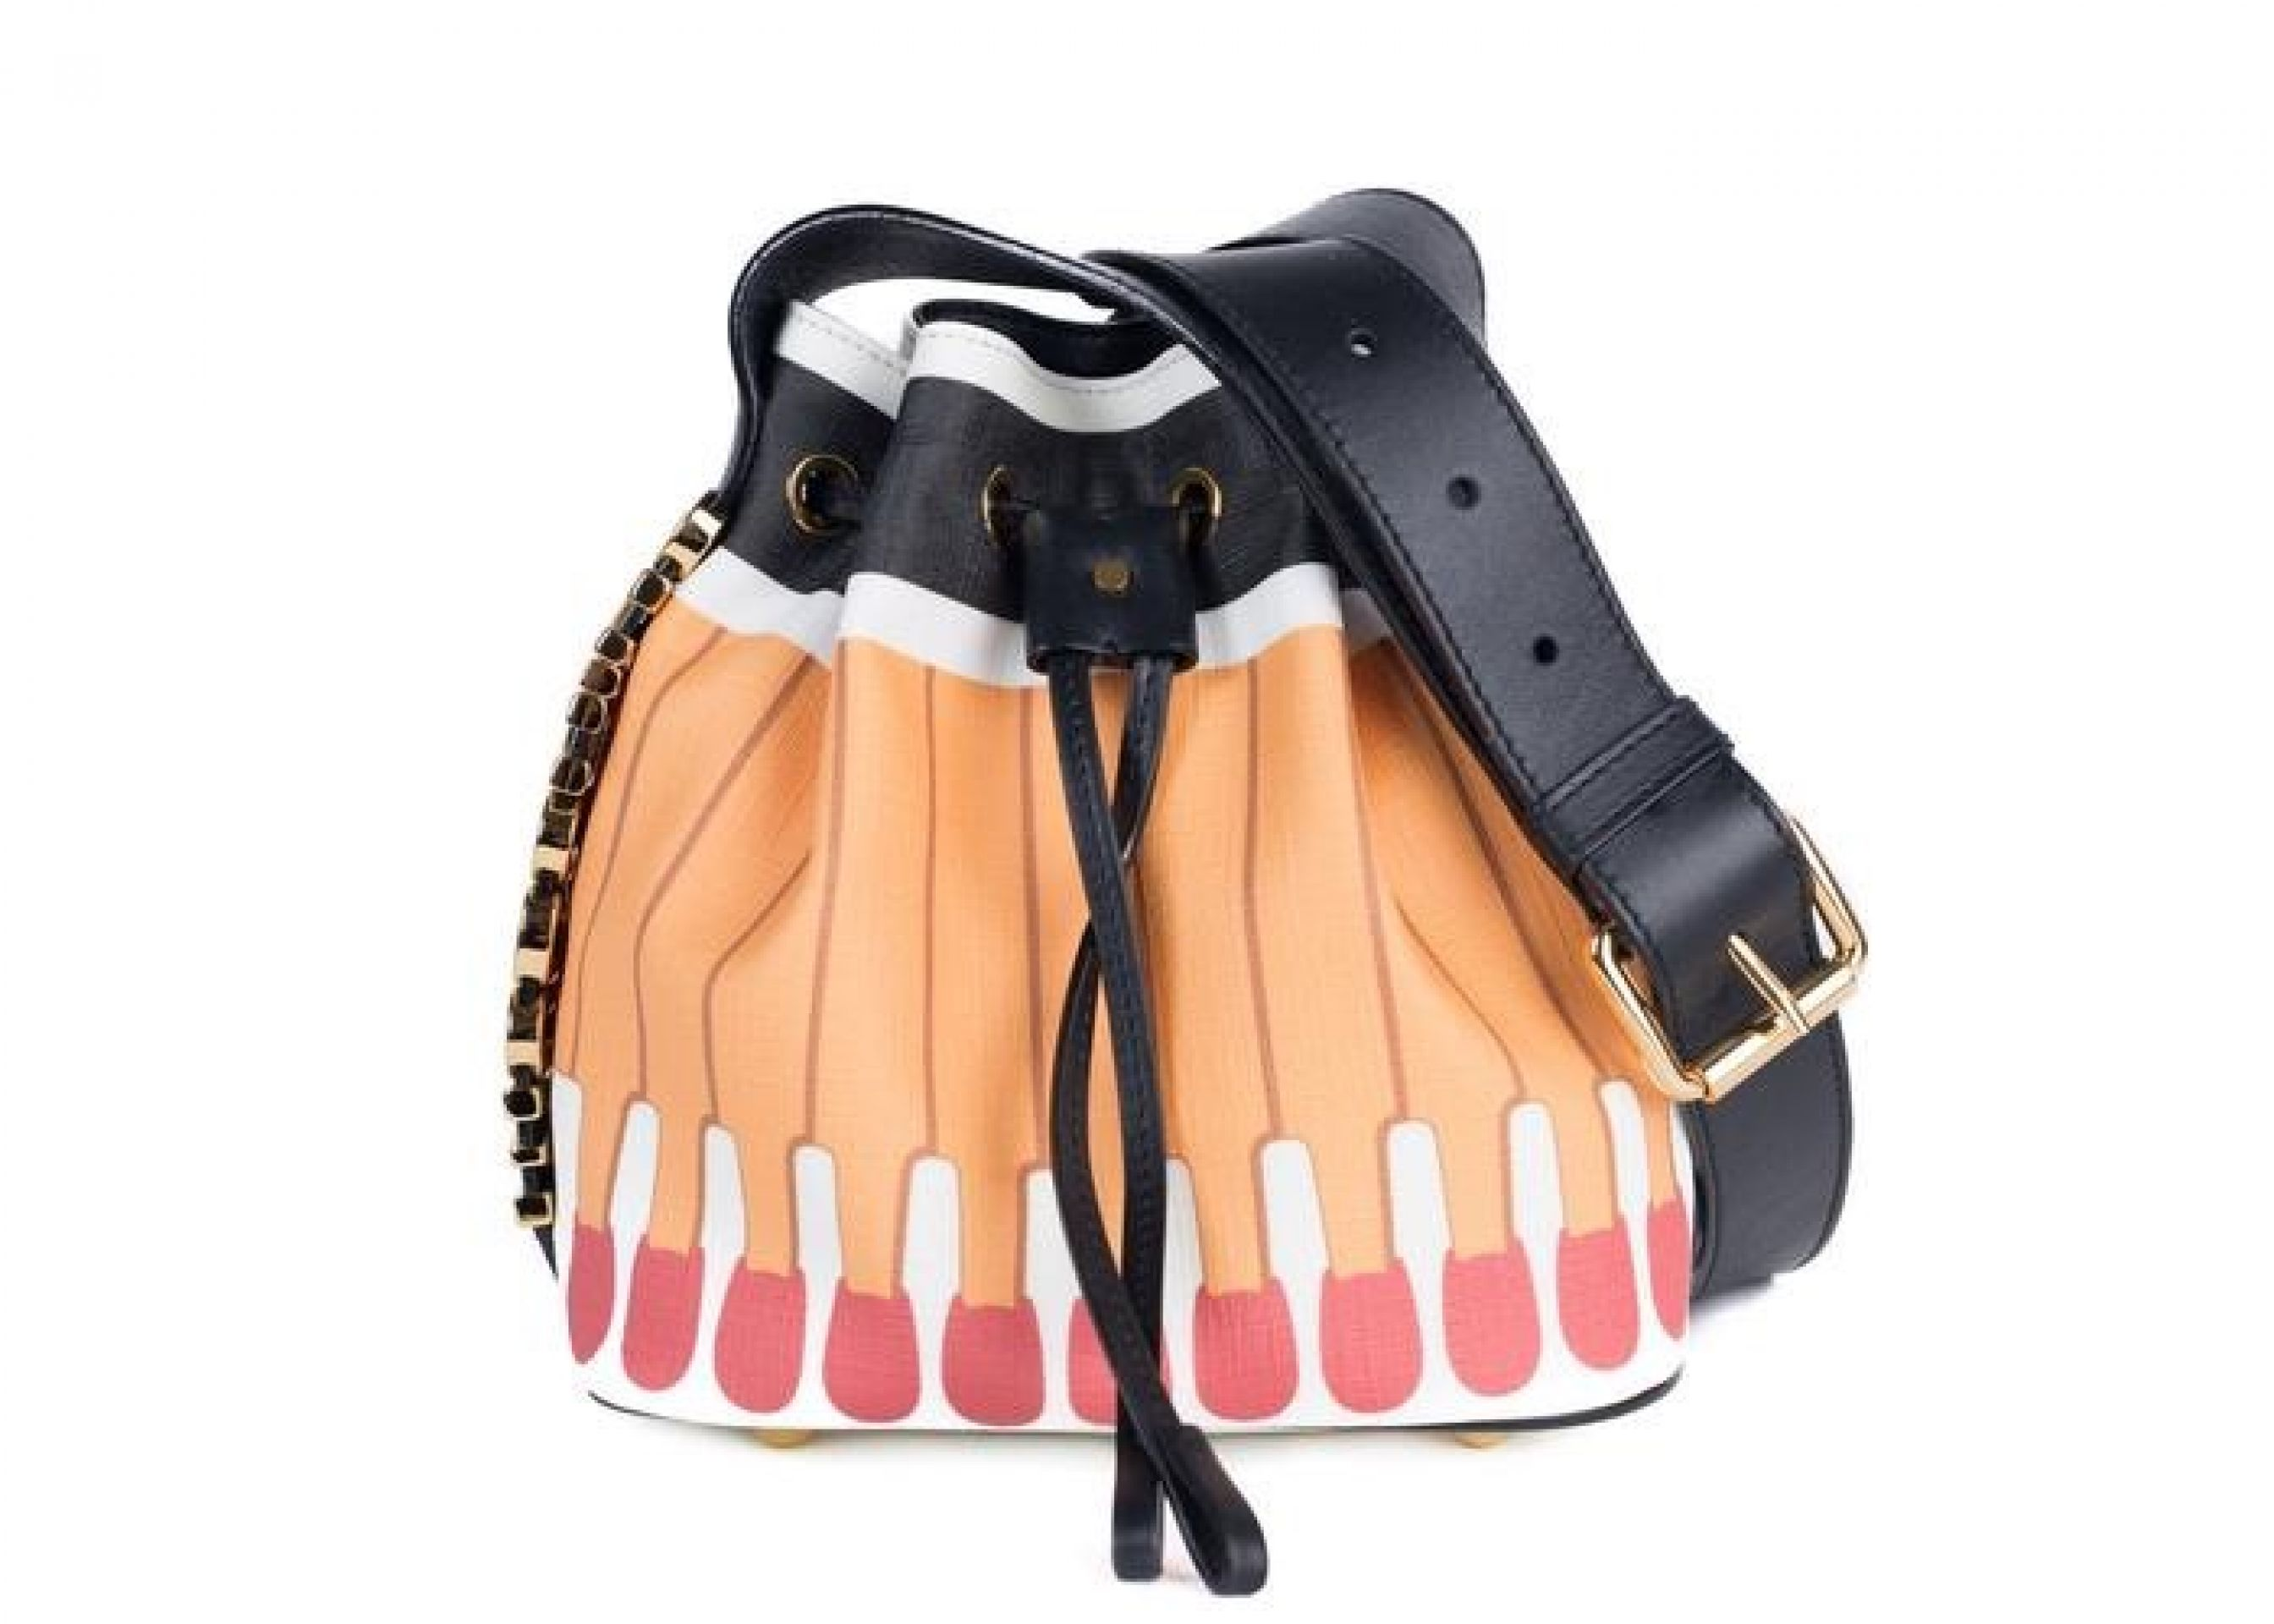 Moschino Orange 'It's Lit Matchbook' PVC Bucket Cross-body Bag